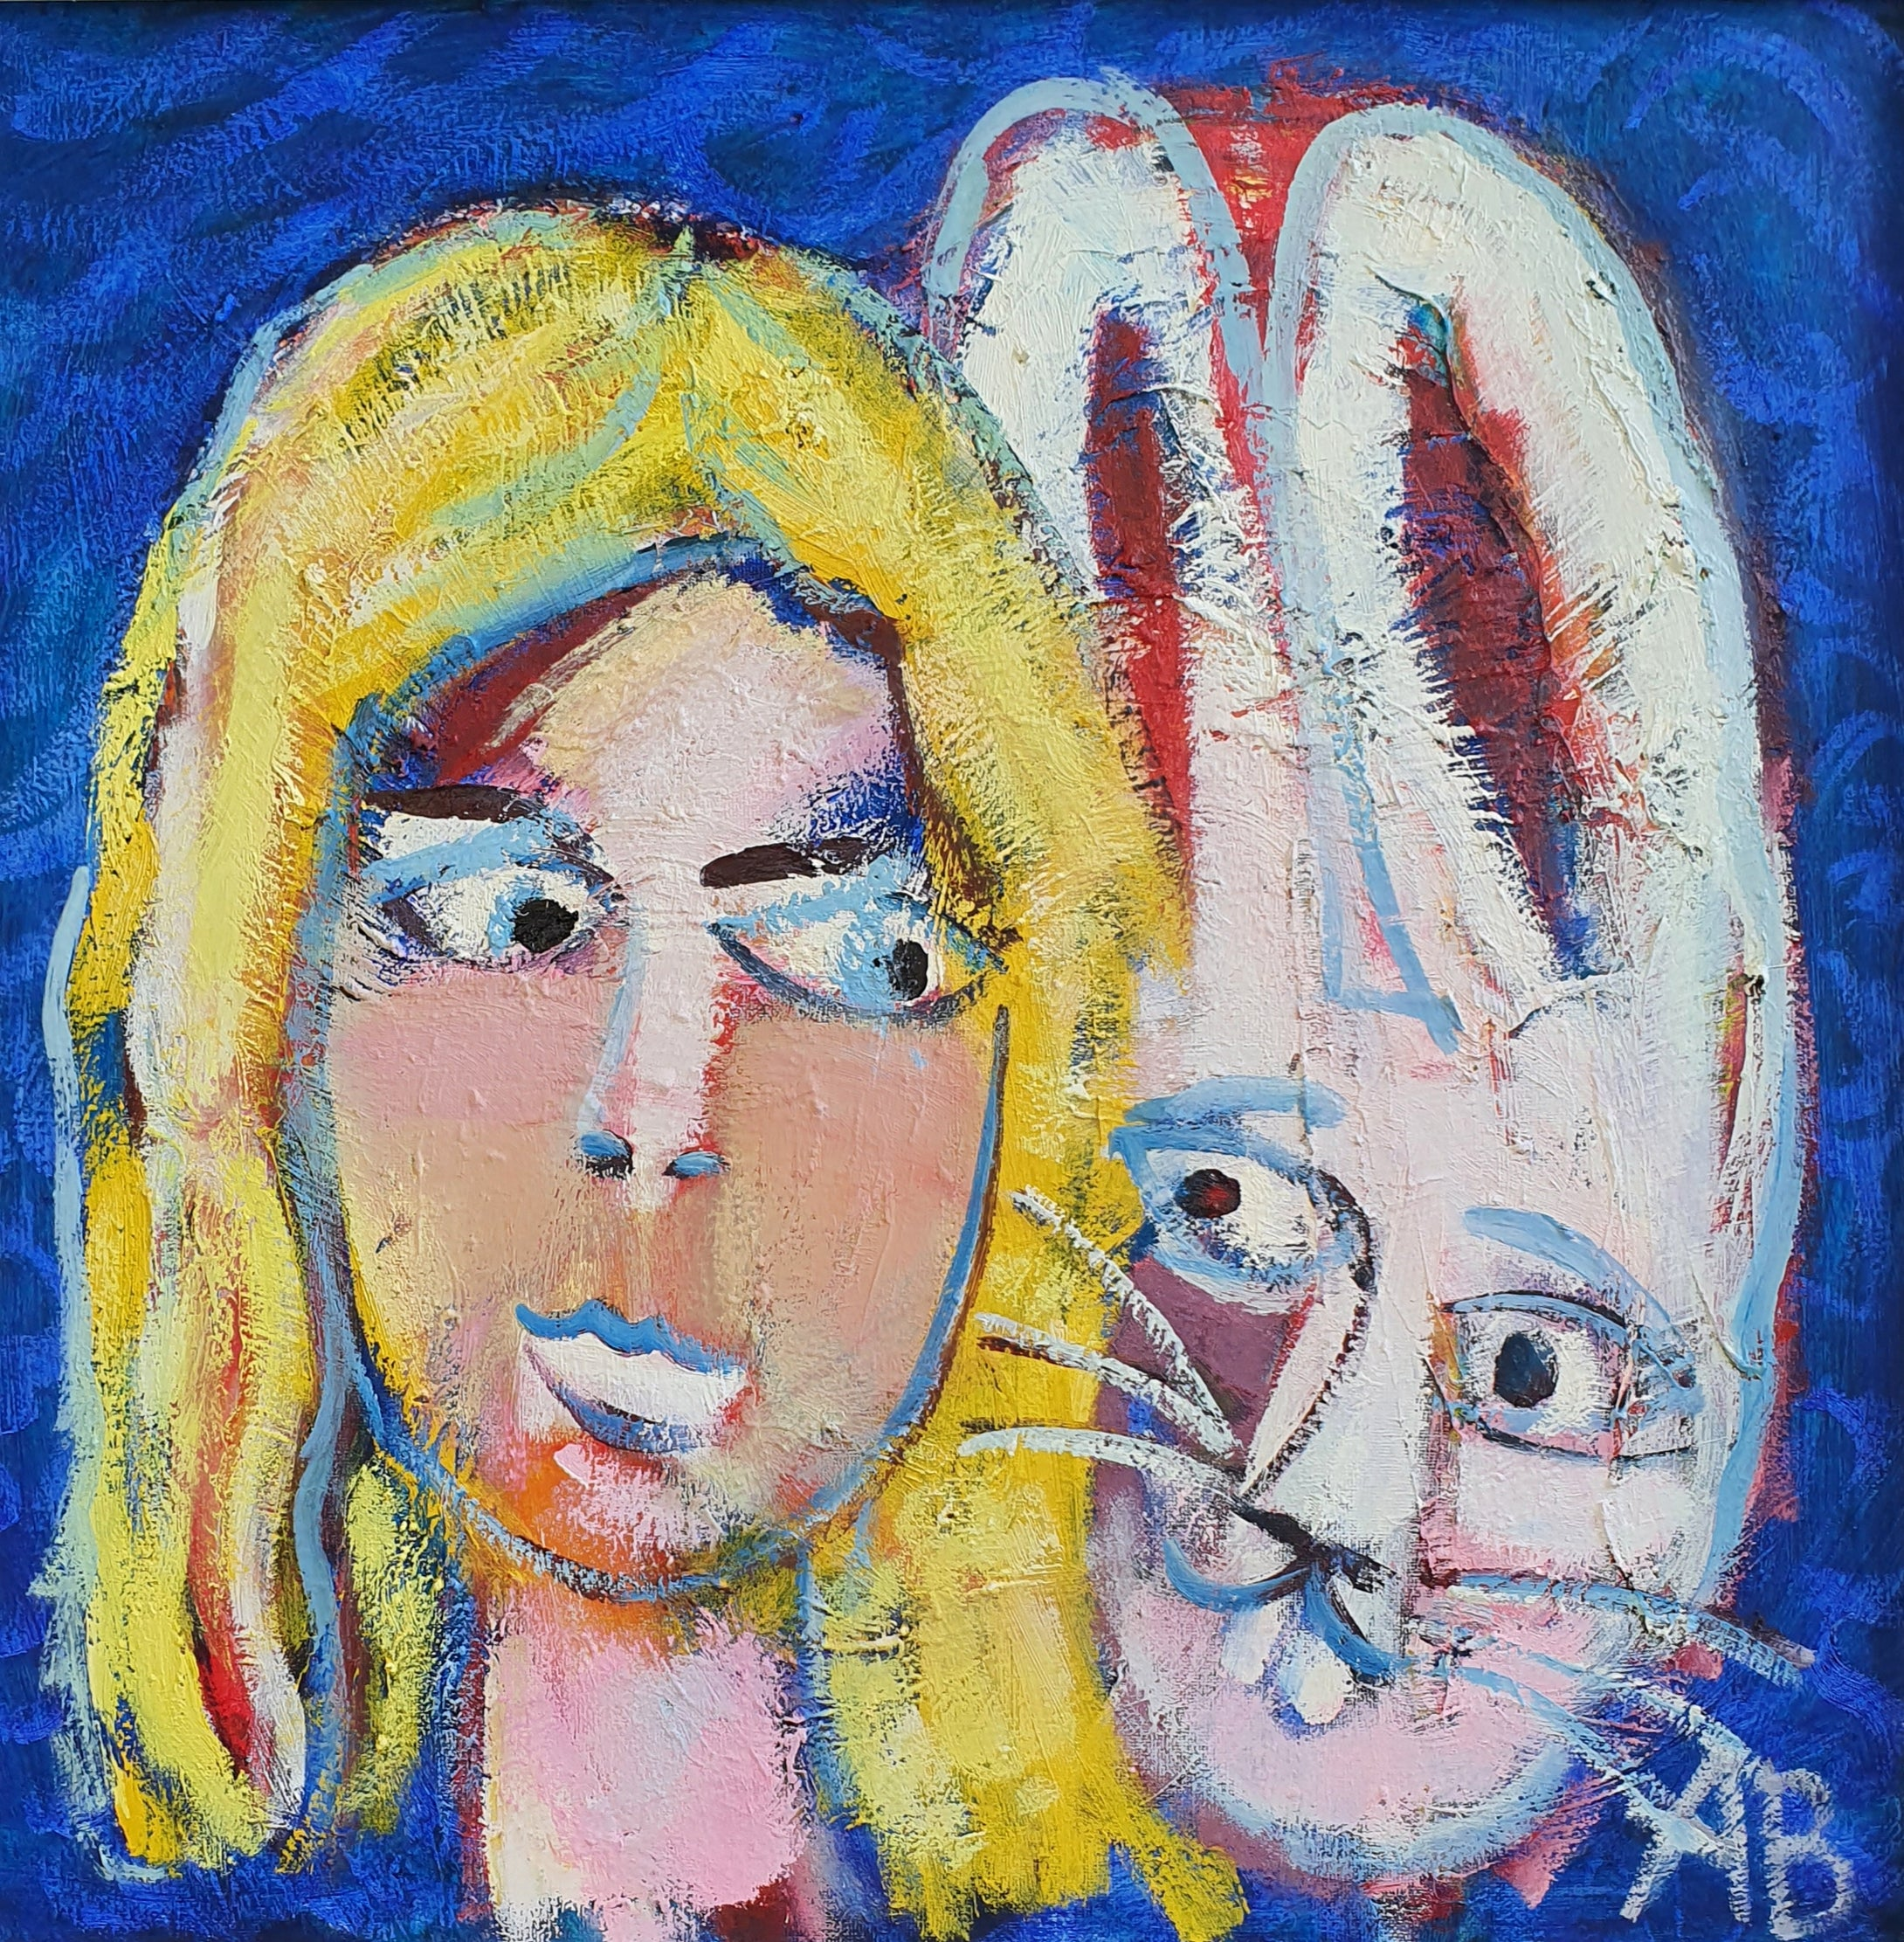 Auguste Blackman 'Bunny Alice' - oil on canvas